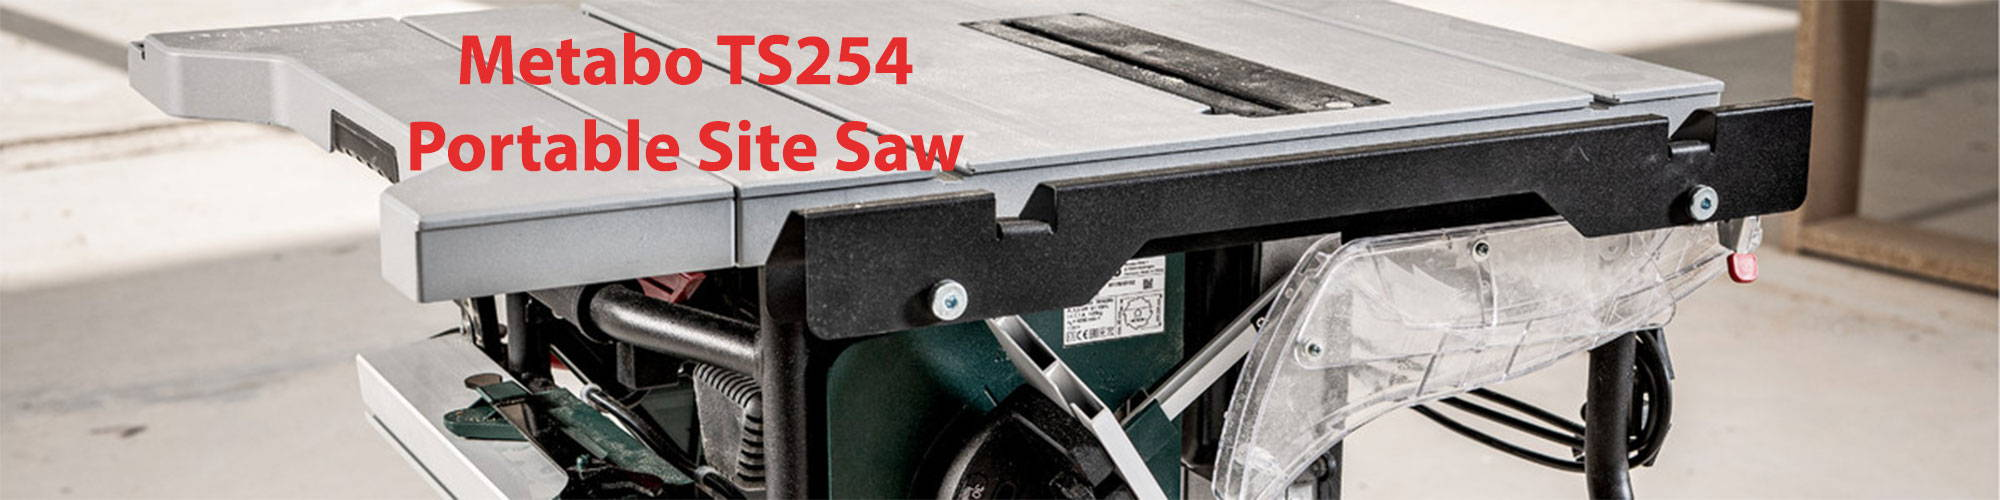 metabo ts254 review